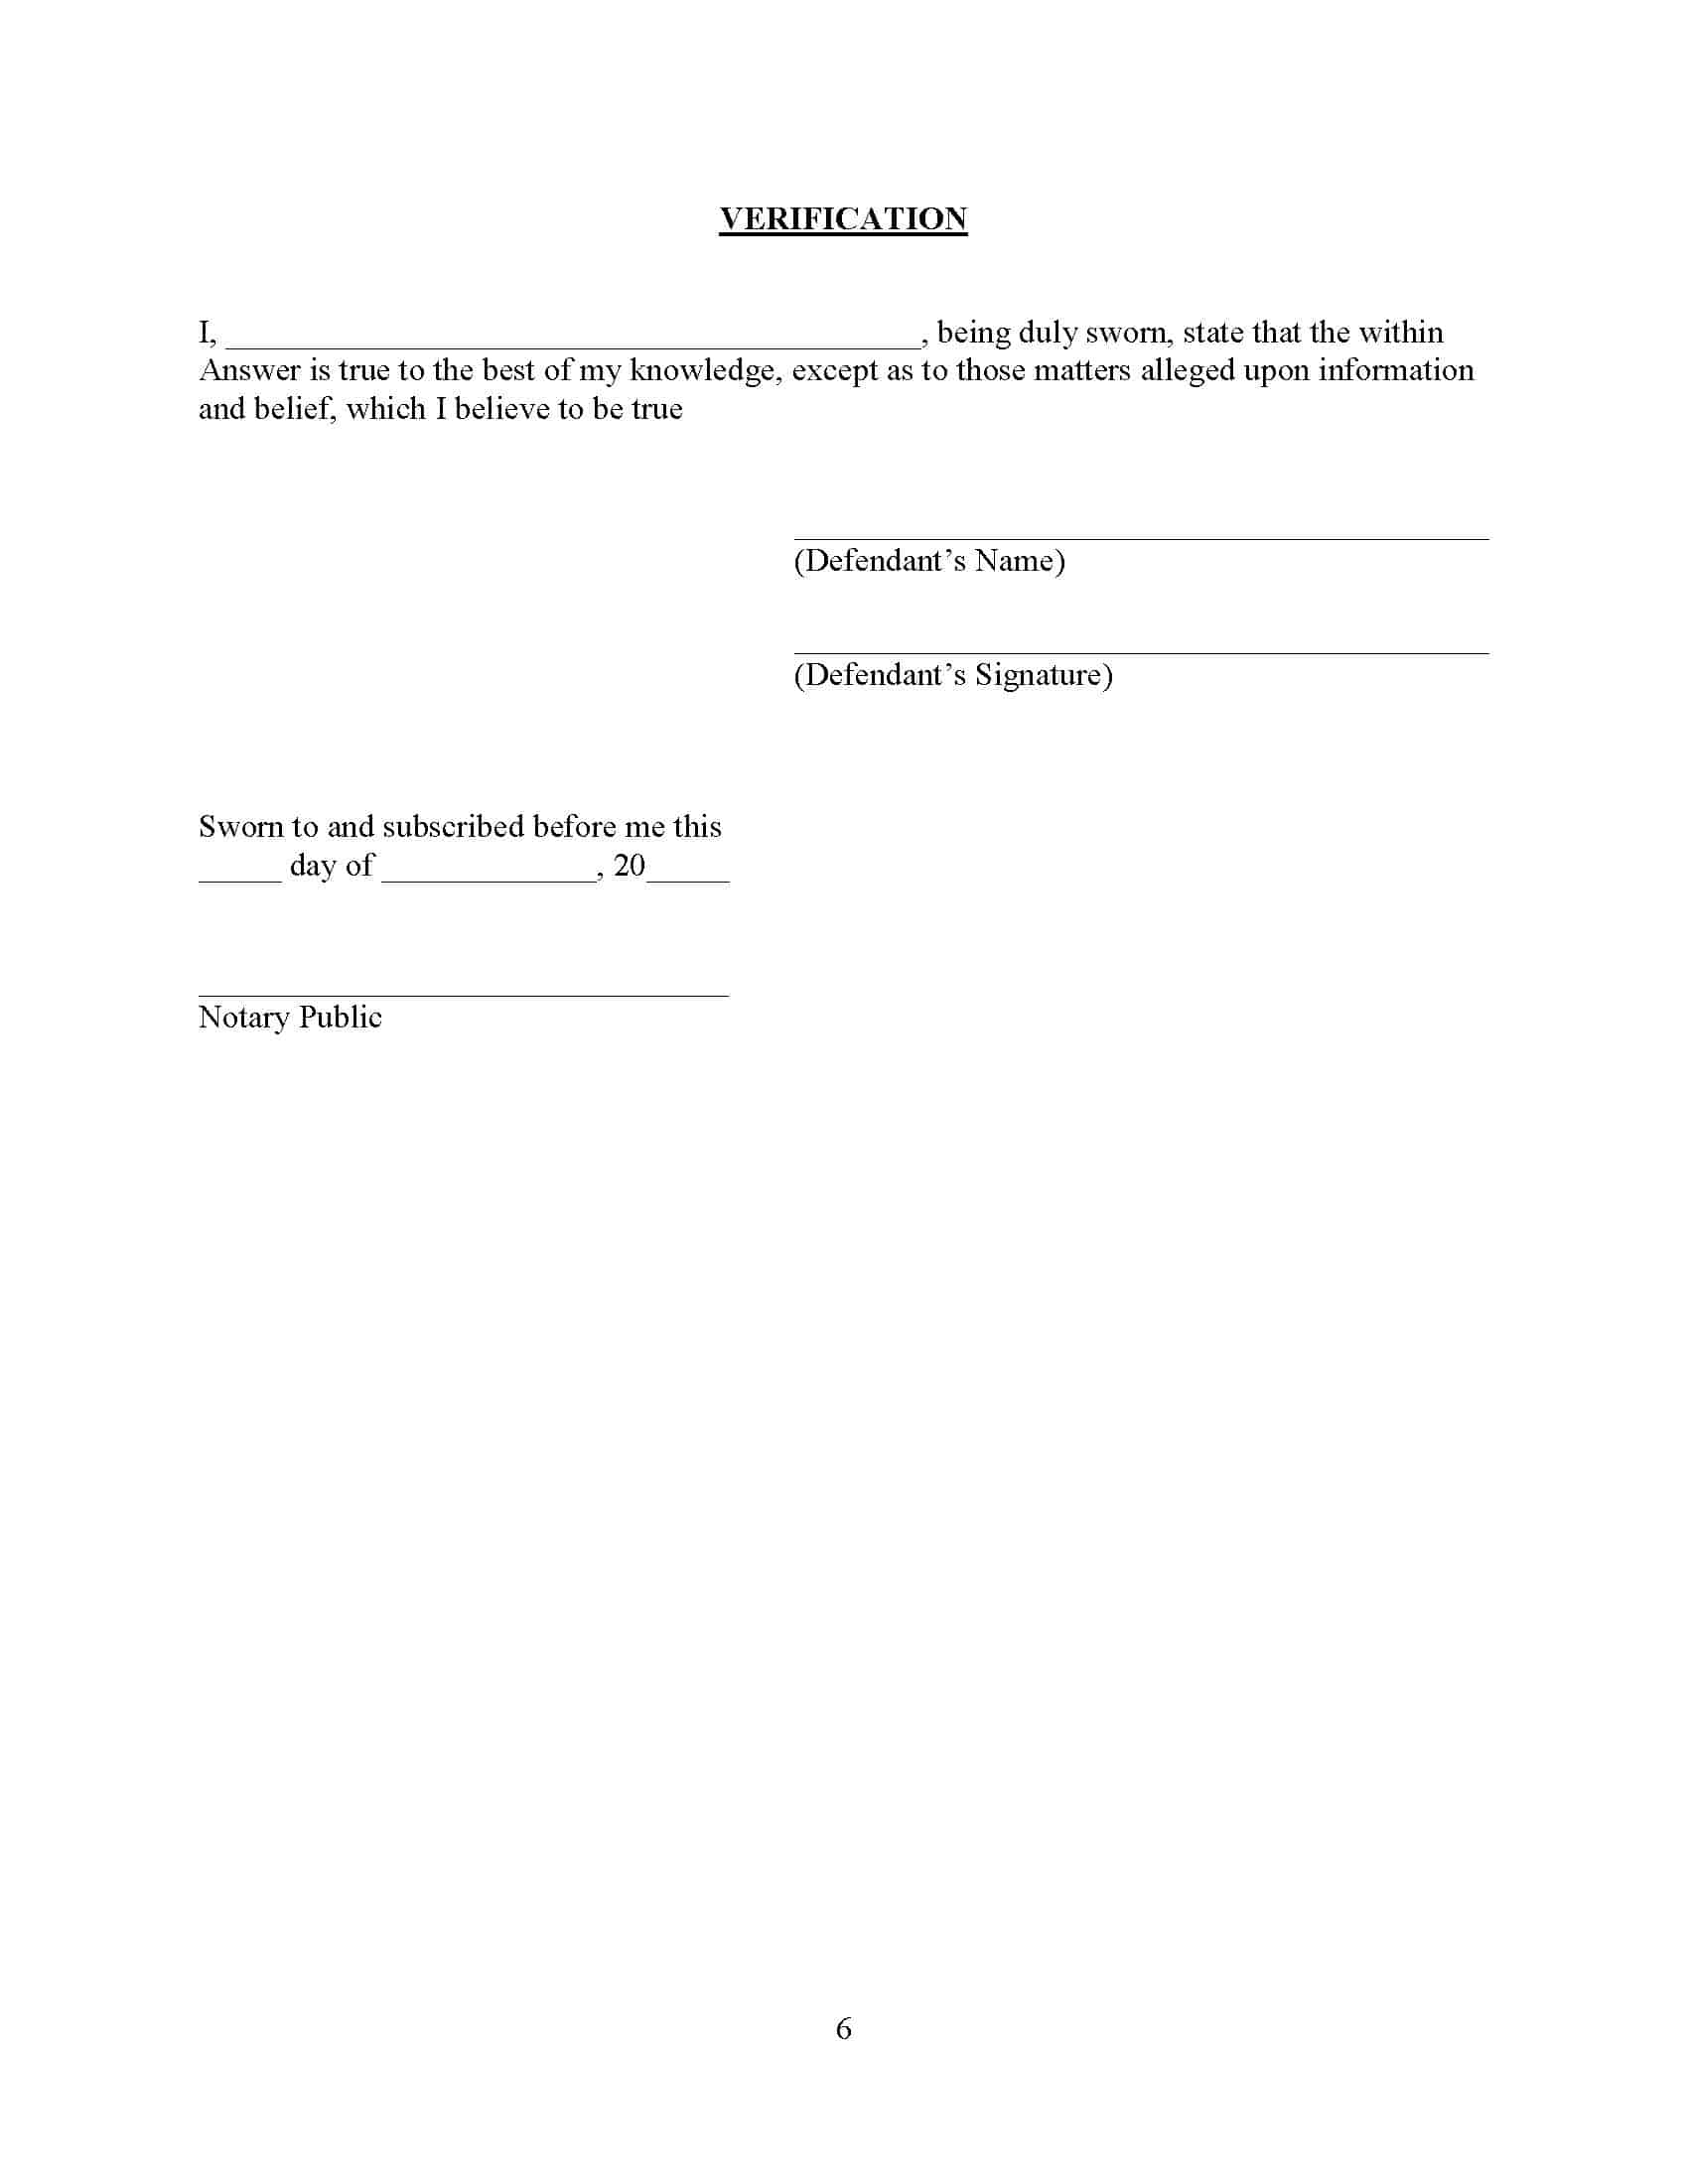 Verification in a NEW YORK foreclosure signature page for the pro se